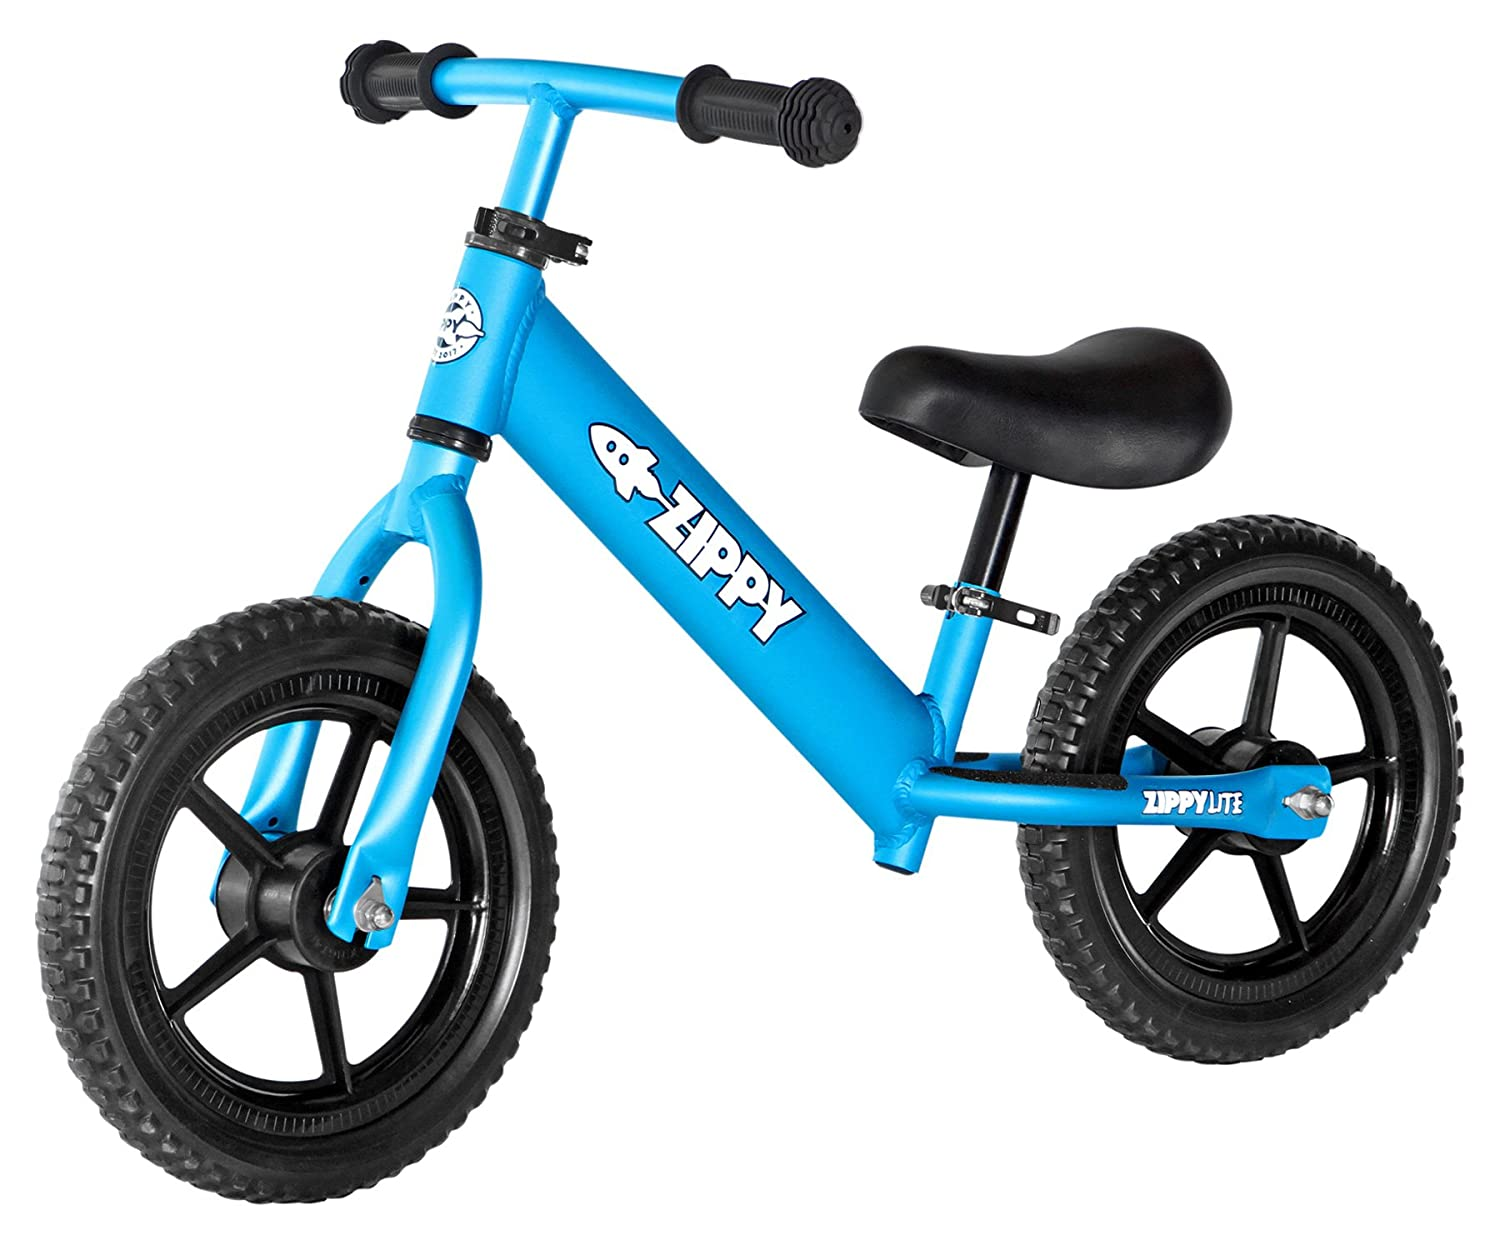 "ZIPPY LITE Training Beginners Running Balance Bike - Lightweight, 12"" Wheels, No Pedals - Aluminum Bicycle for Toddlers & Kids Ages 1.5 to 5 Years"